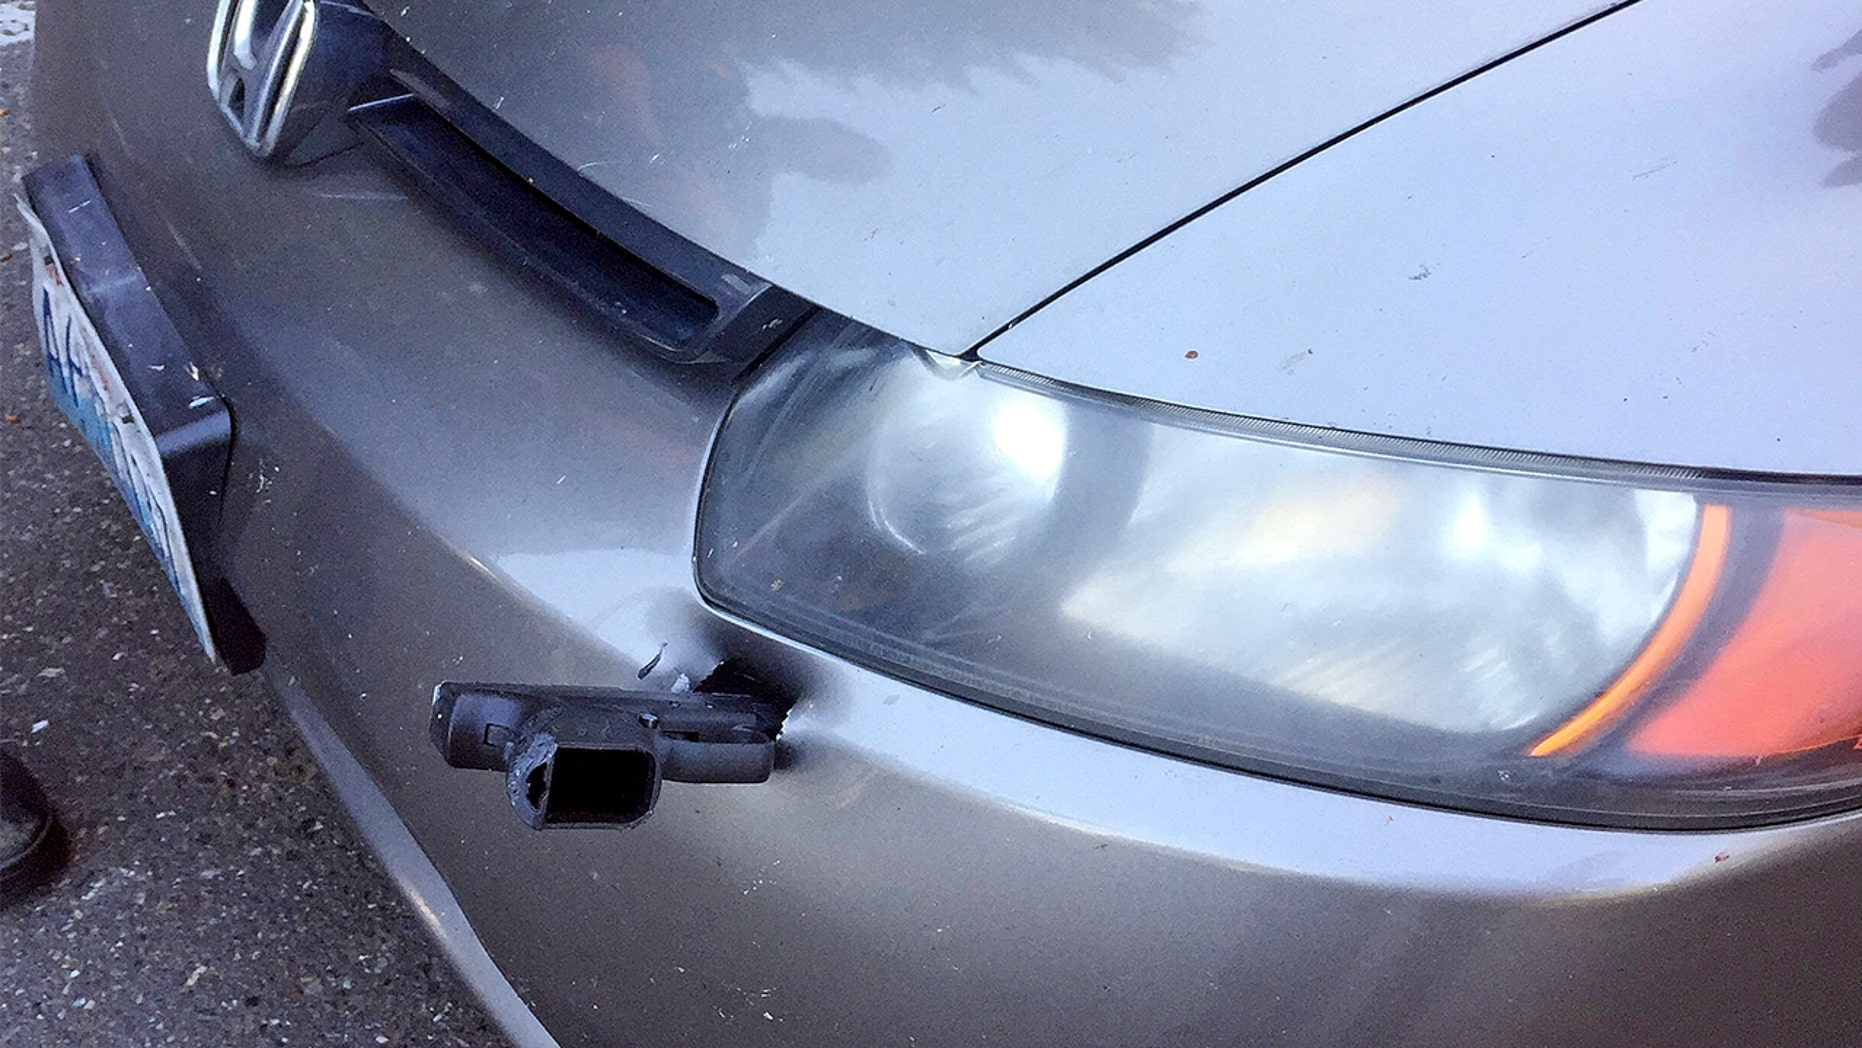 A driver in Washington state found a gun lodged in the front of his car, authorities said.